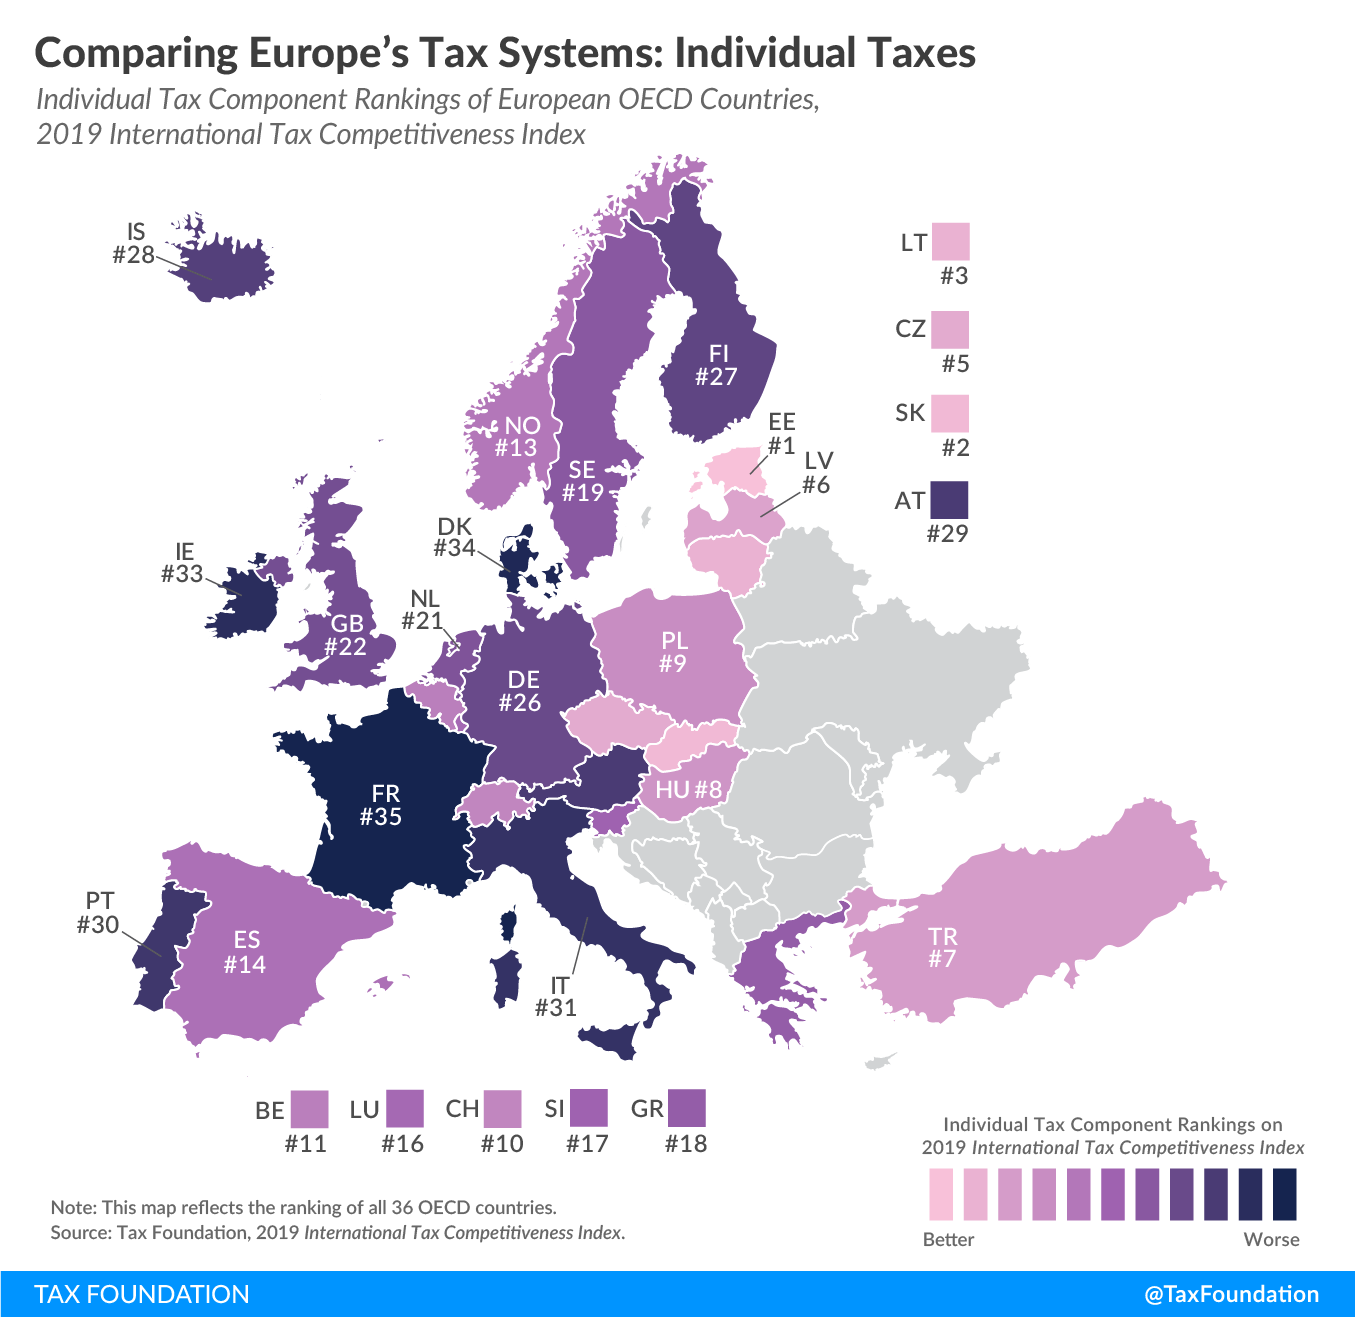 worst personal income tax systems in Europe, best personal income tax systems in Europe, best personal income tax systems in the OECD,worst personal income tax systems in the OECD